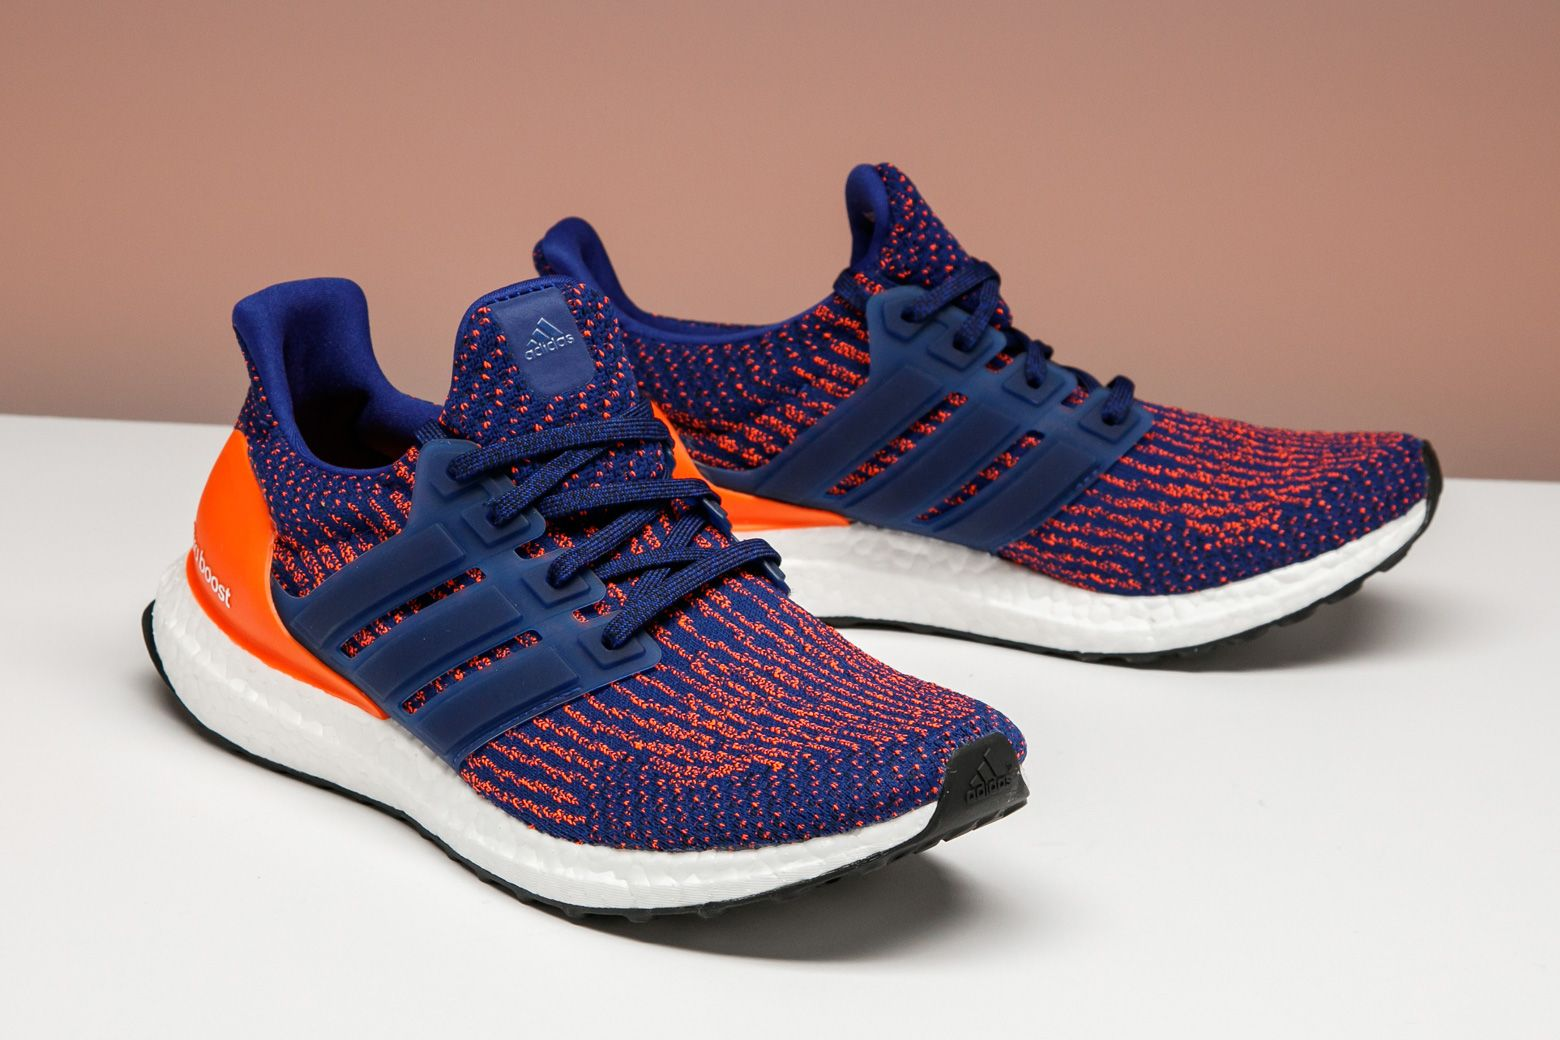 15213e7e9c0 adidas thought outside of the box when designing this vibrant Ultra Boost  3.0